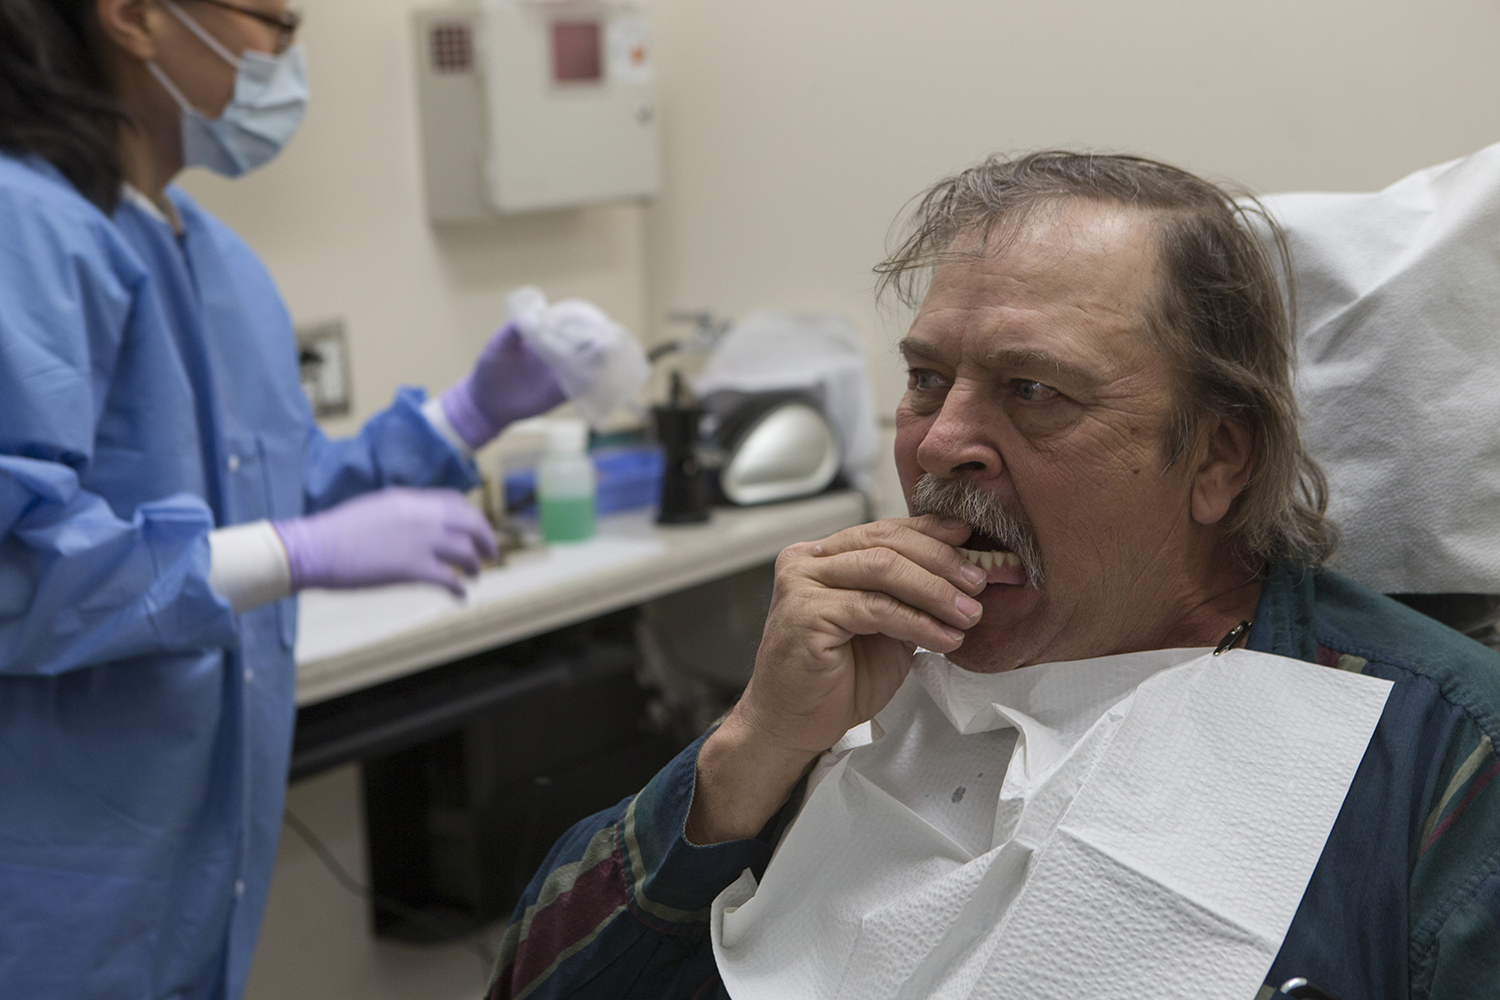 Steve Myers receives dentures from Dr. Hyunok Jo in the College of Denistry on April 11, 2019. The College of Dentistry has been giving free dentures to veterans in the community. A regular set of dentures is around $2500 and are typically not covered by dental insurance through the VA.